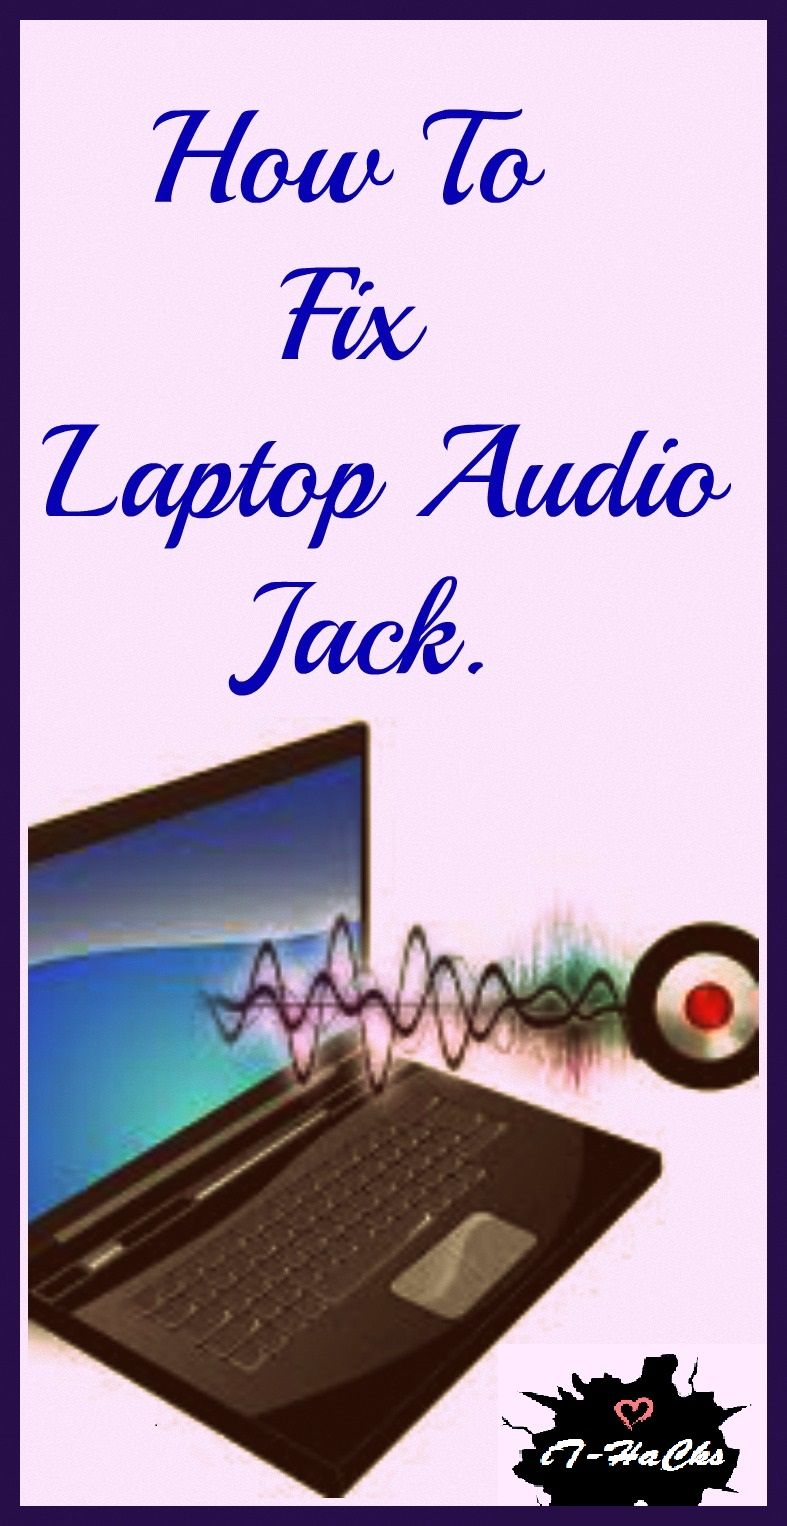 How To Fix Laptop Audio Jack | PC Hacks | Best blogs, Blog